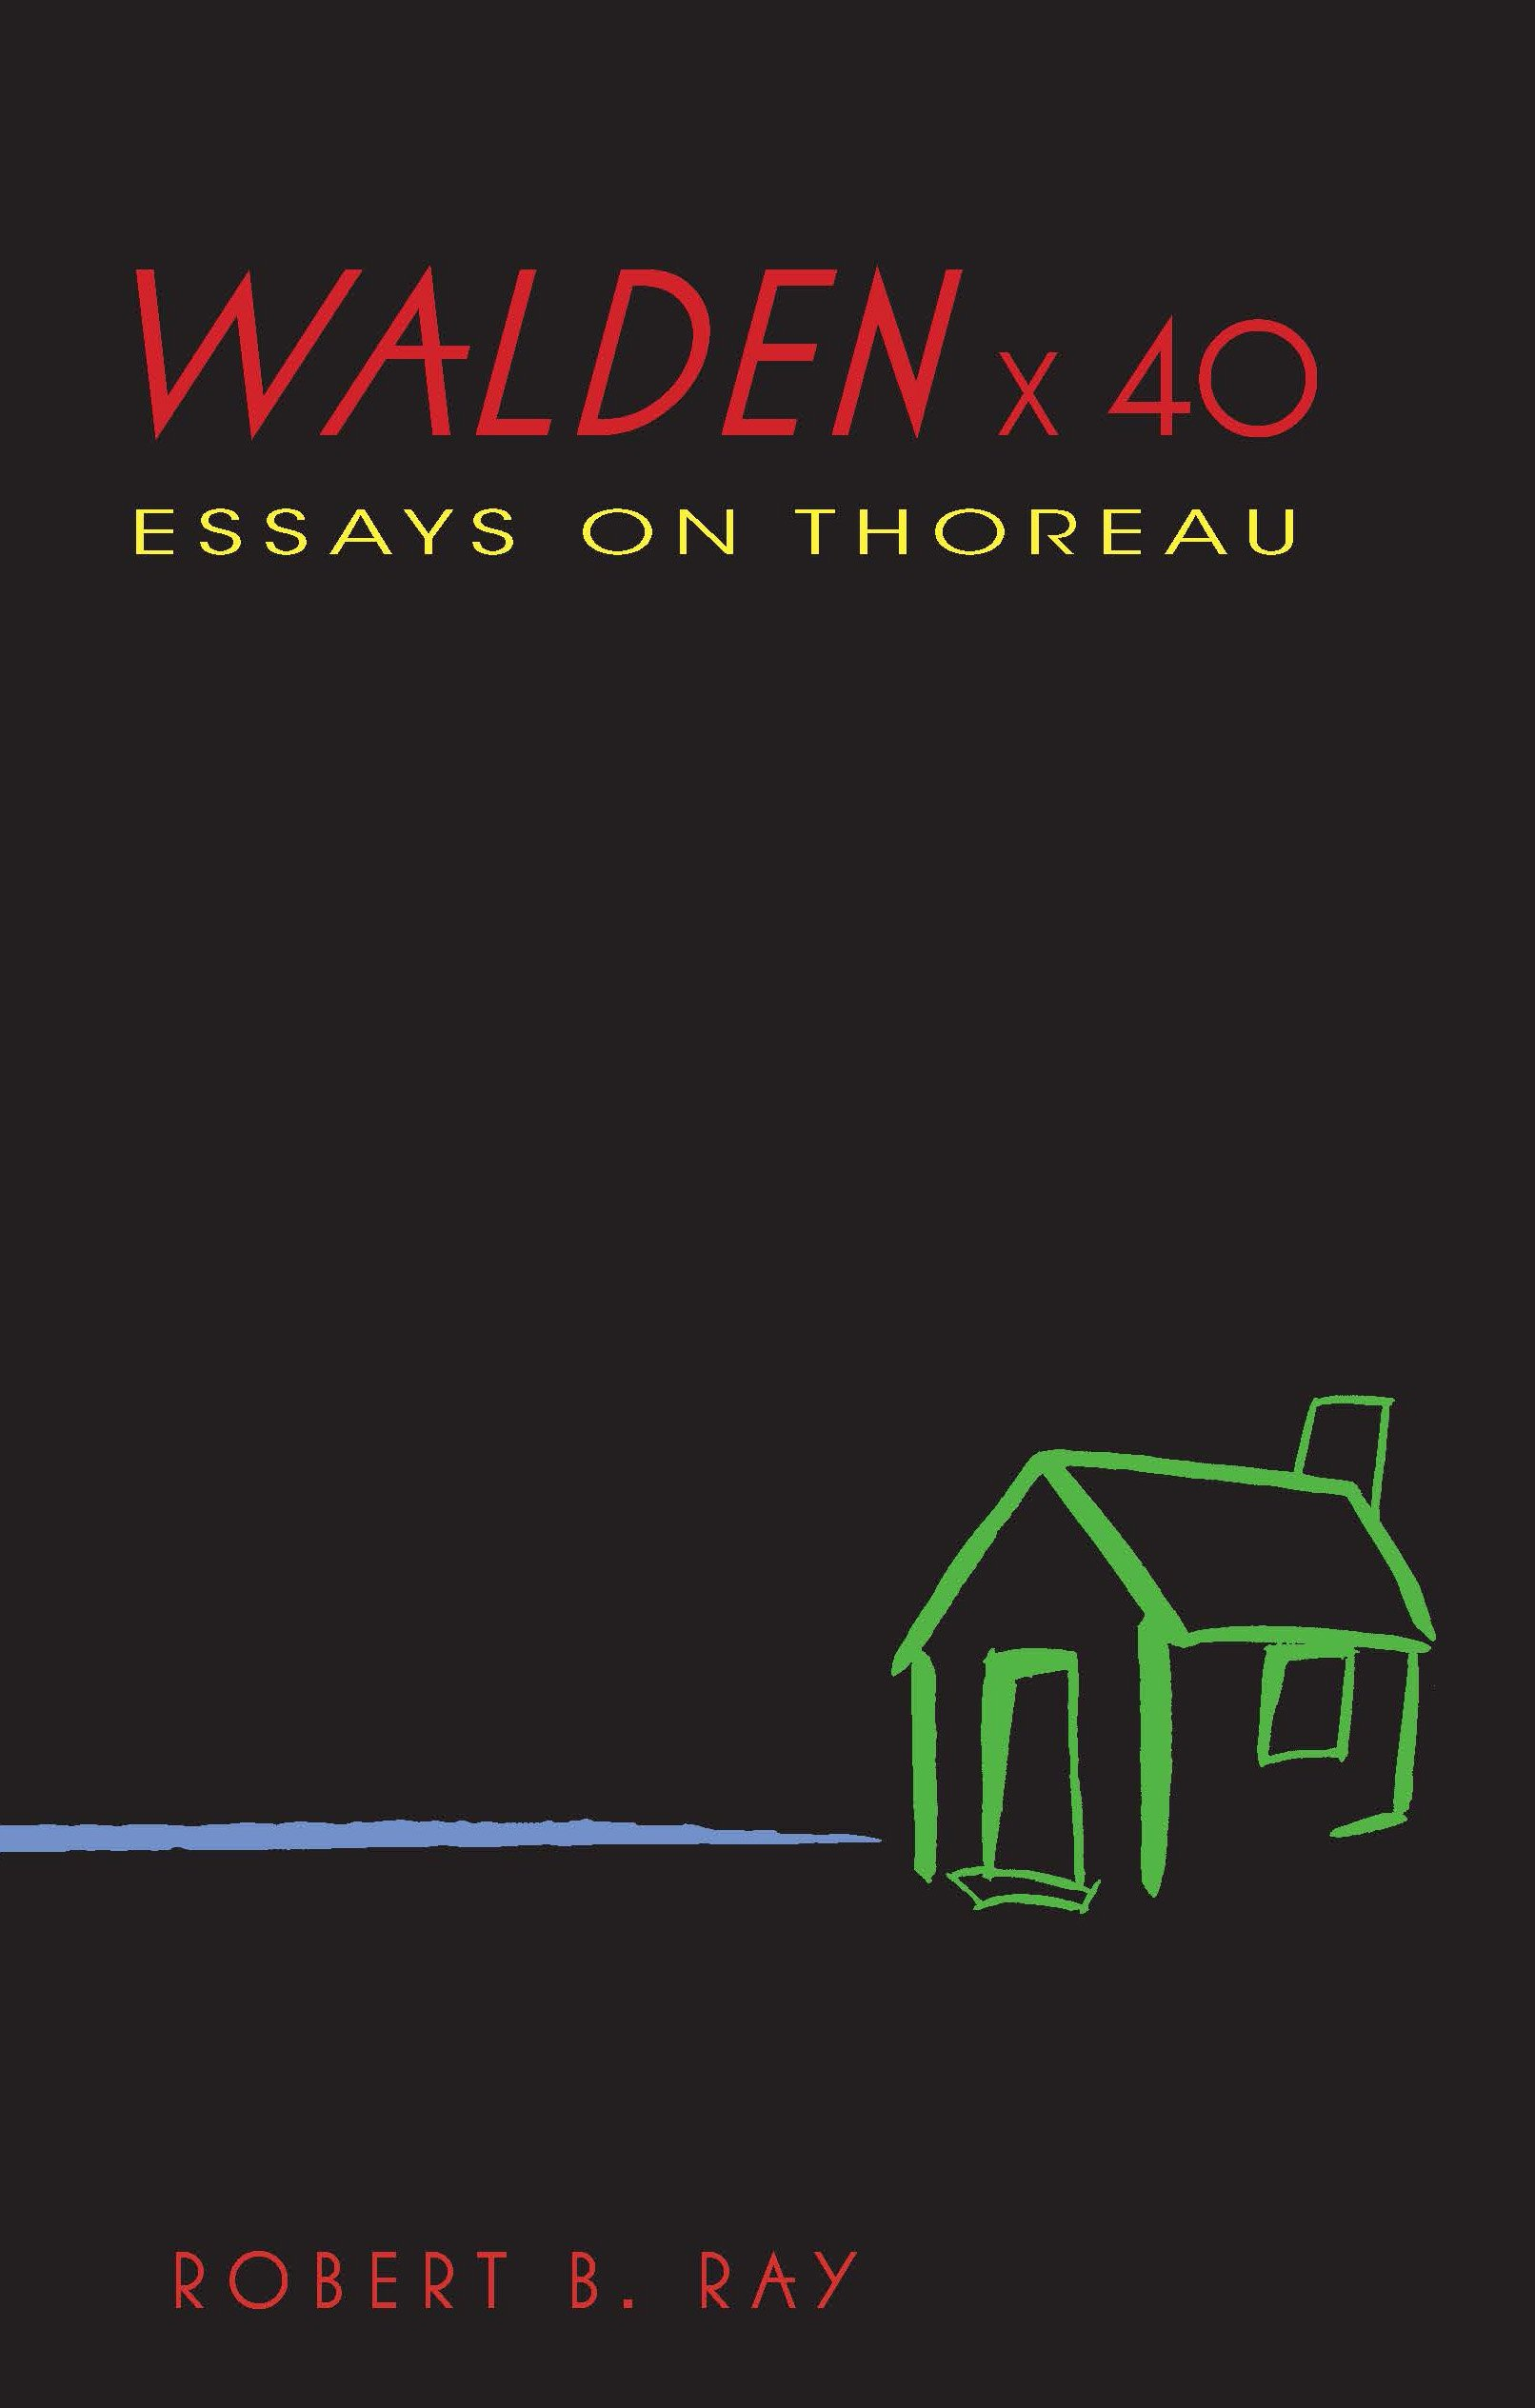 Walden x 40: Essays on Thoreau PDF ePub fb2 book